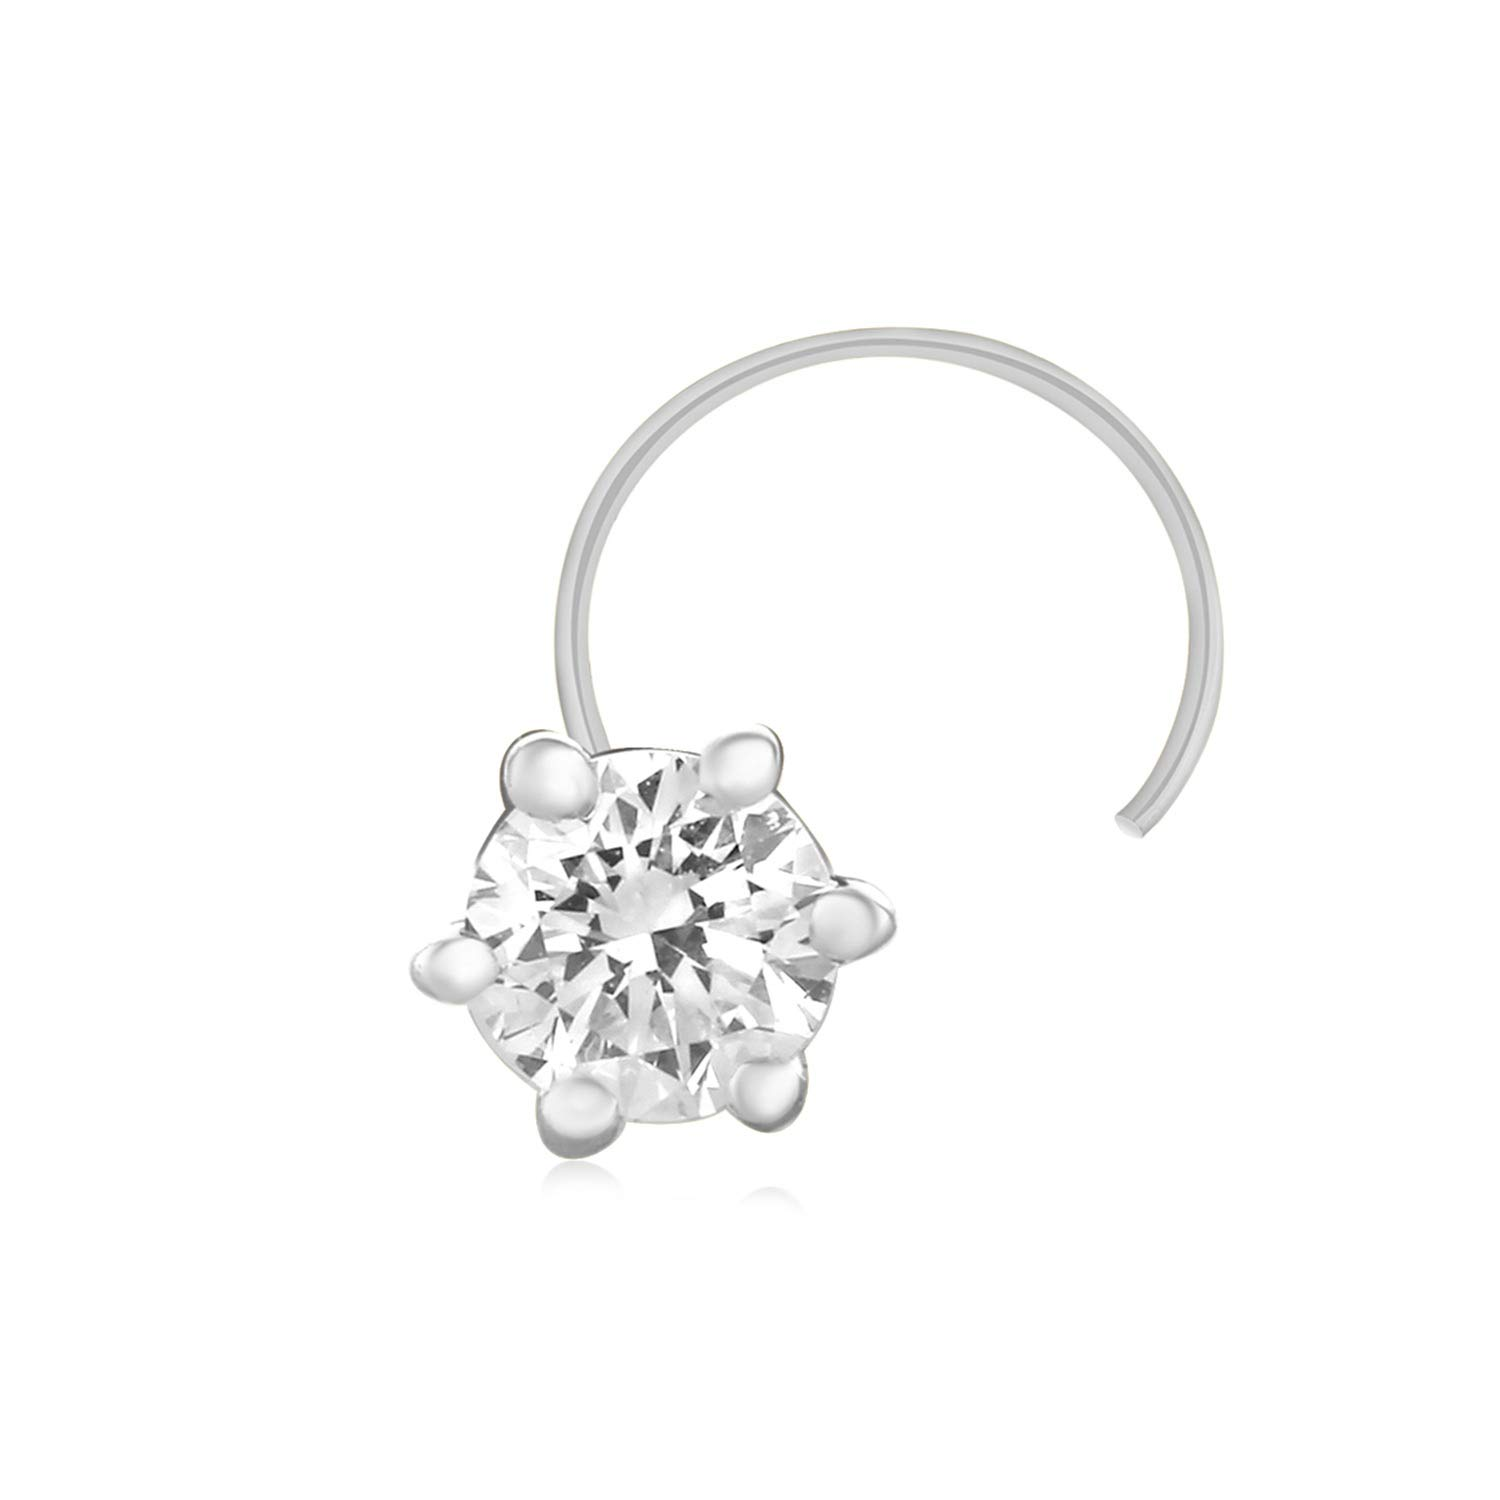 CARATS FOR YOU 950 Solid Platinum 0.12ct Round Shape Genuine Real Natural Diamond Solitaire Nose Ring Stud Pin for Women by CARATS FOR YOU